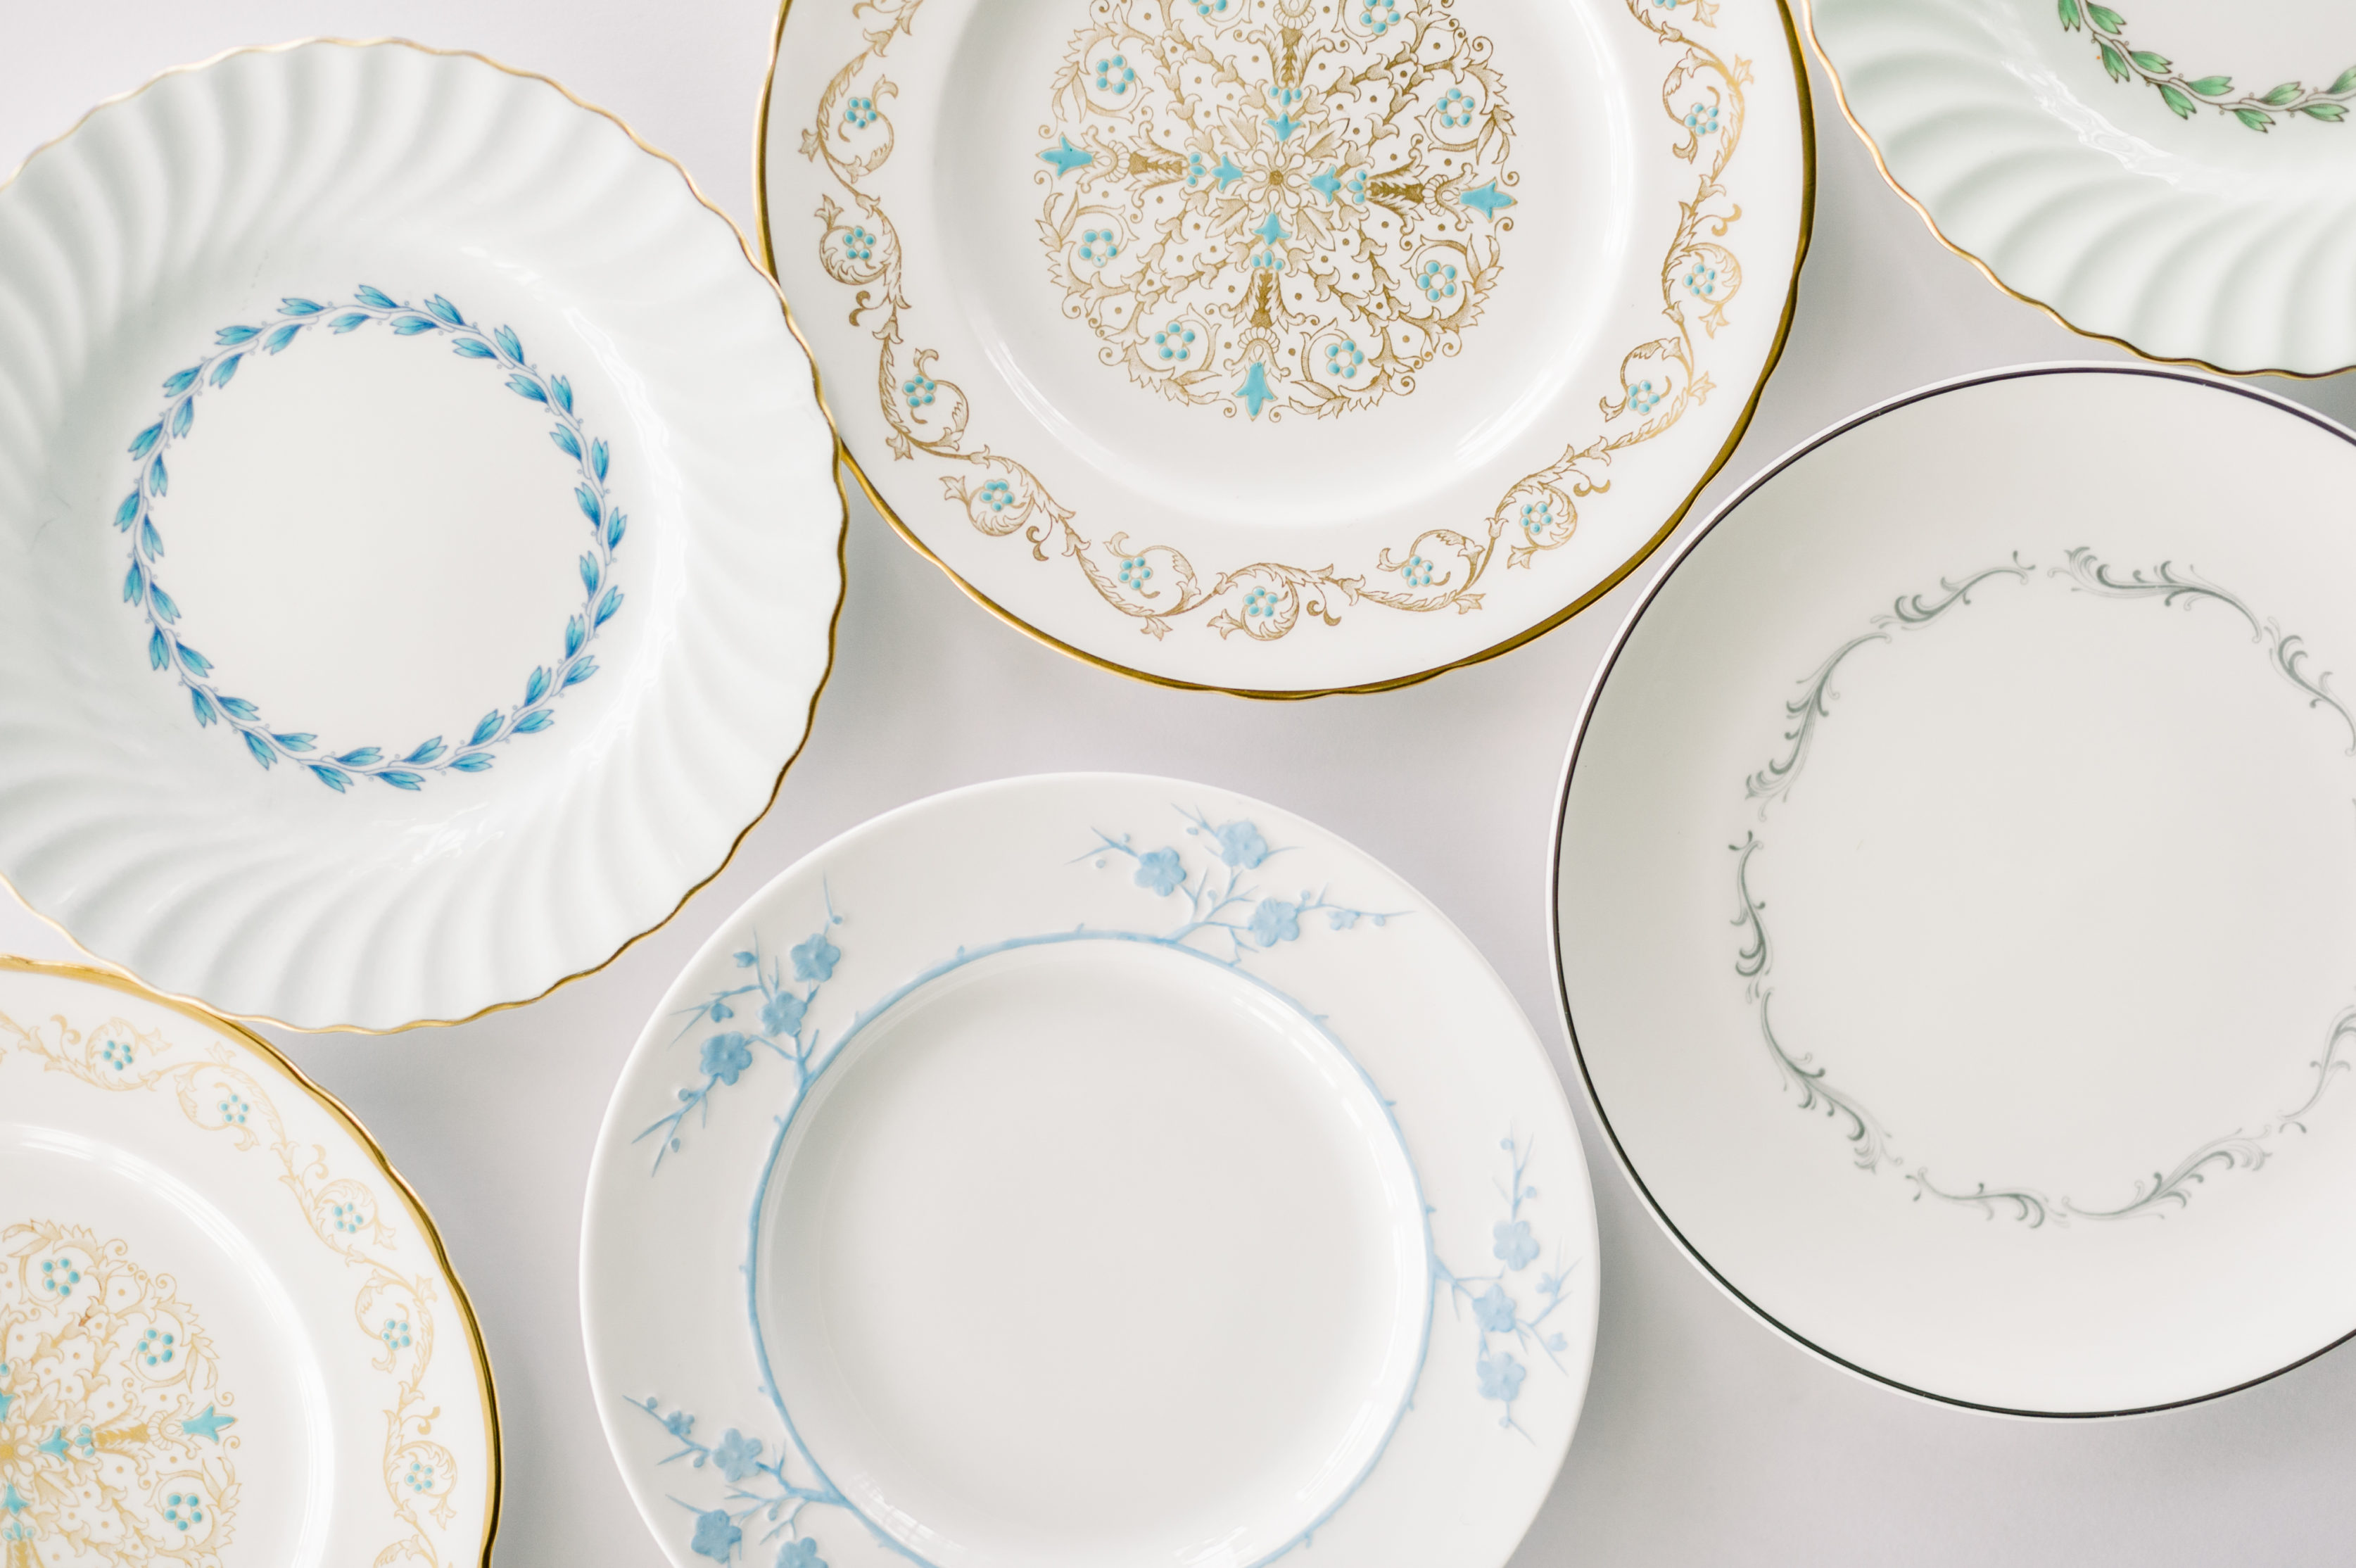 Vintage china cake plates for your wedding reception or event